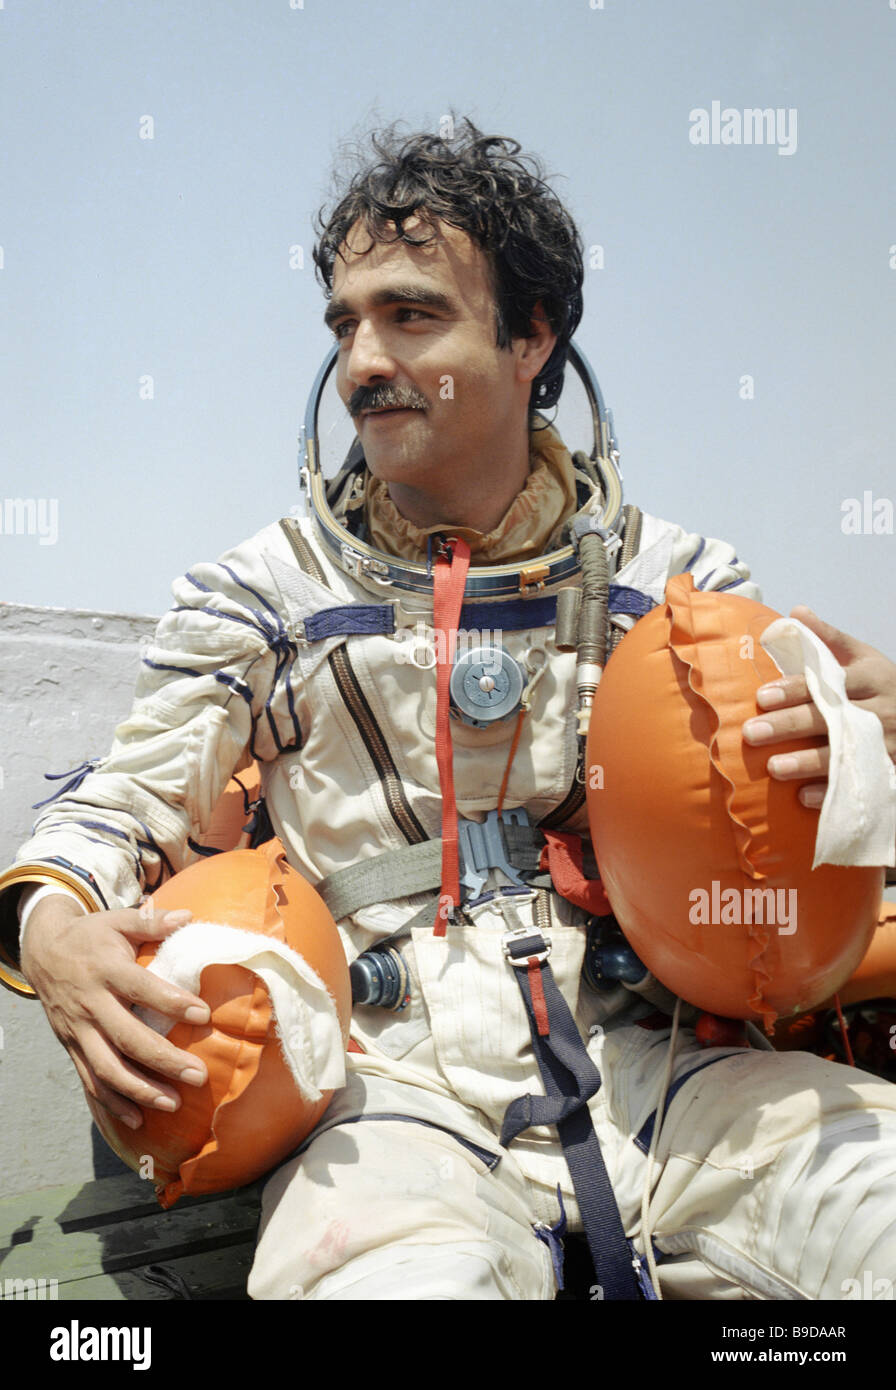 Mission specialist Abdul Ahan Momand during preparations for the first Soviet Afghani joint space mission on Soyuz Stock Photo